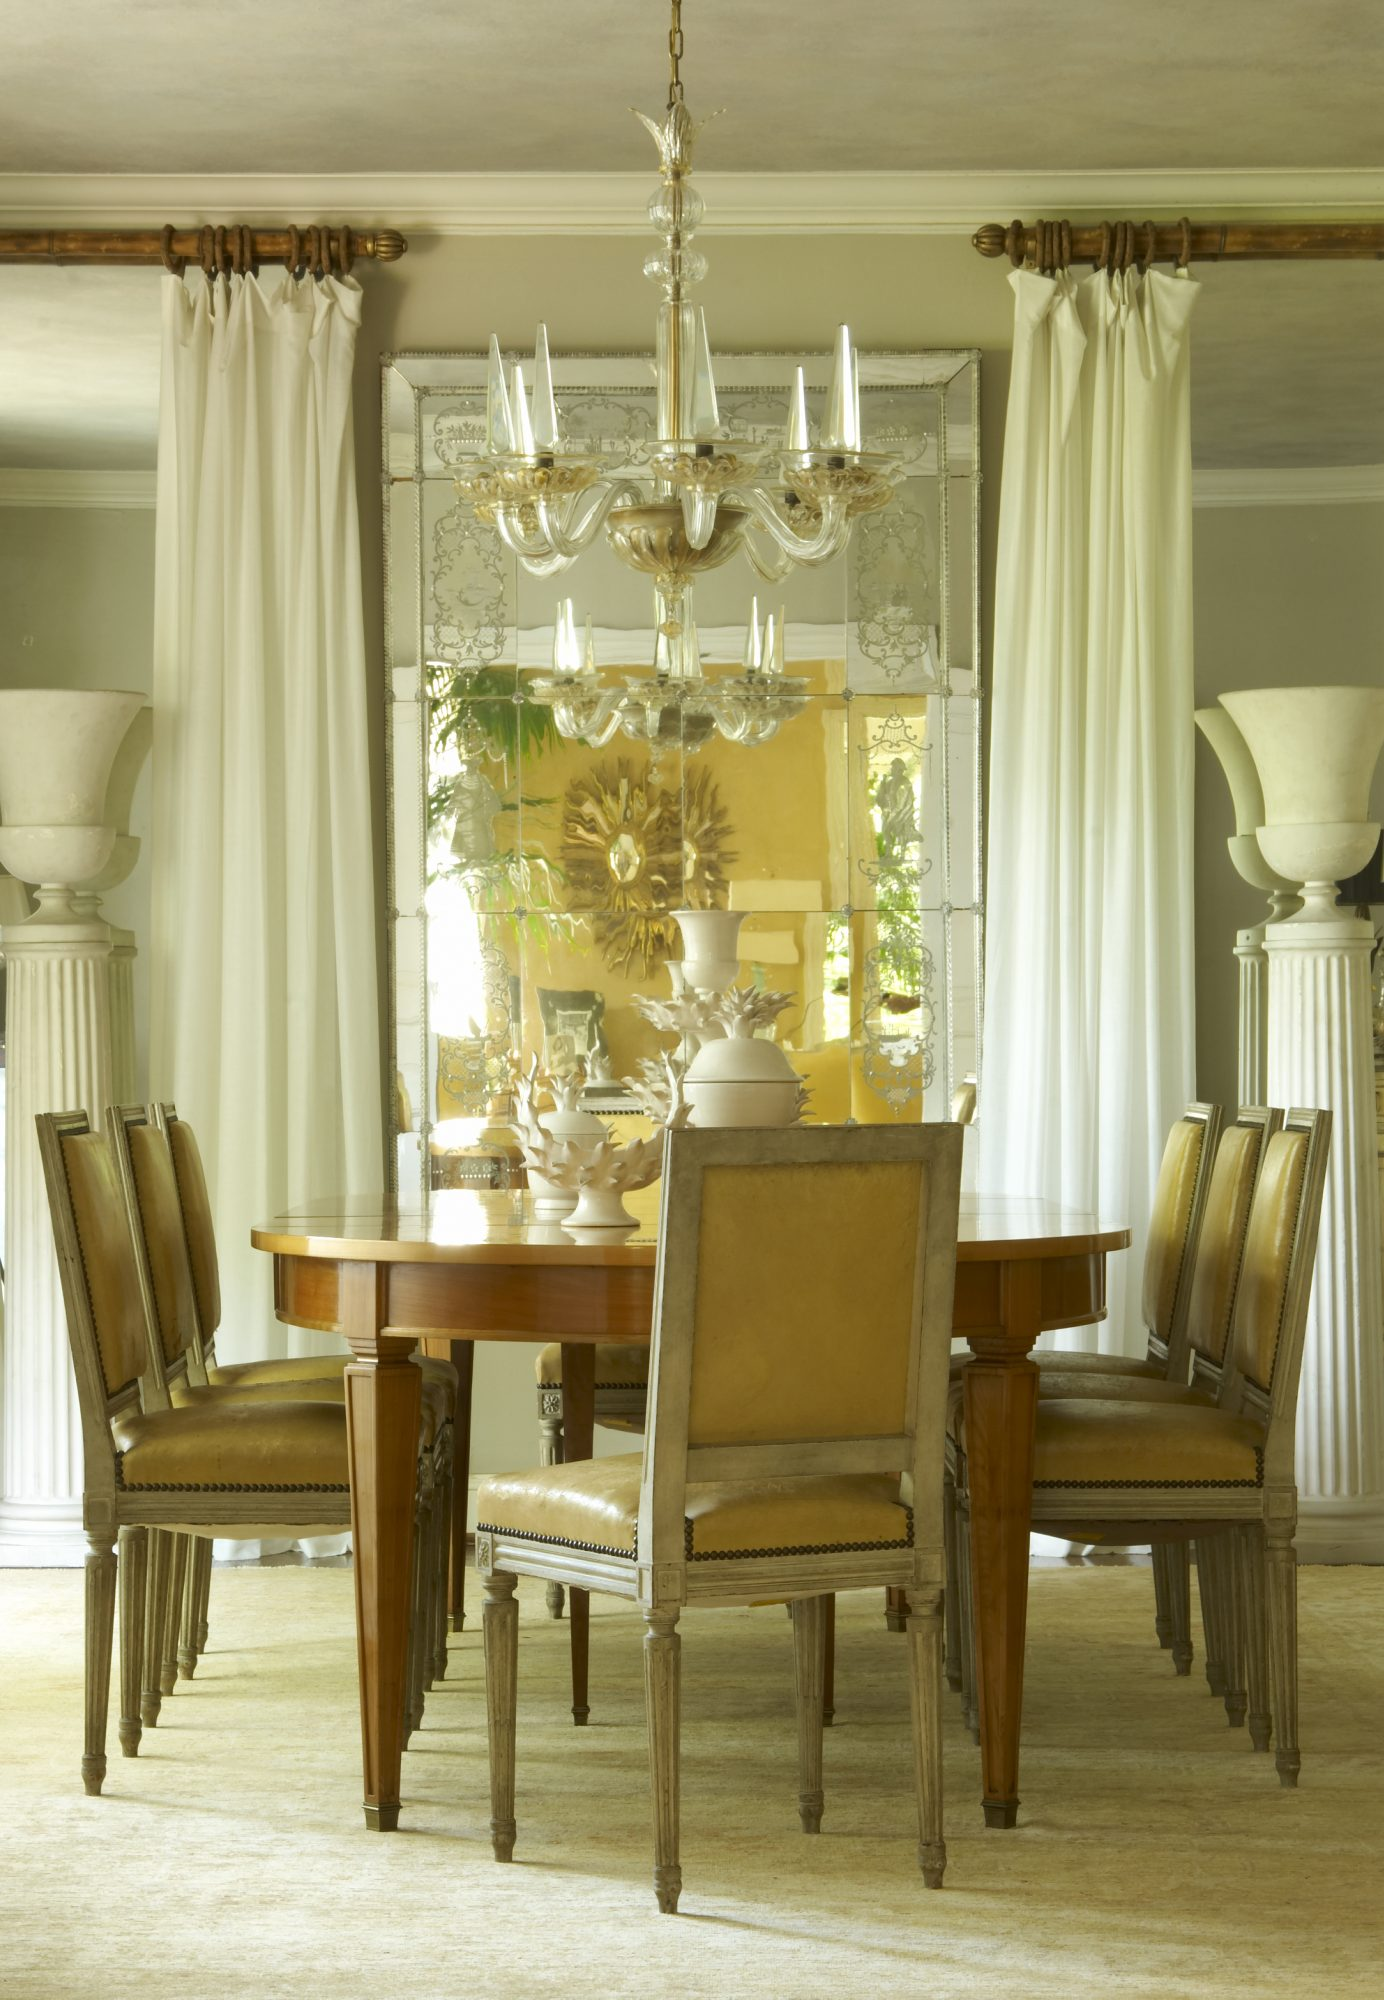 antiques in a dining room